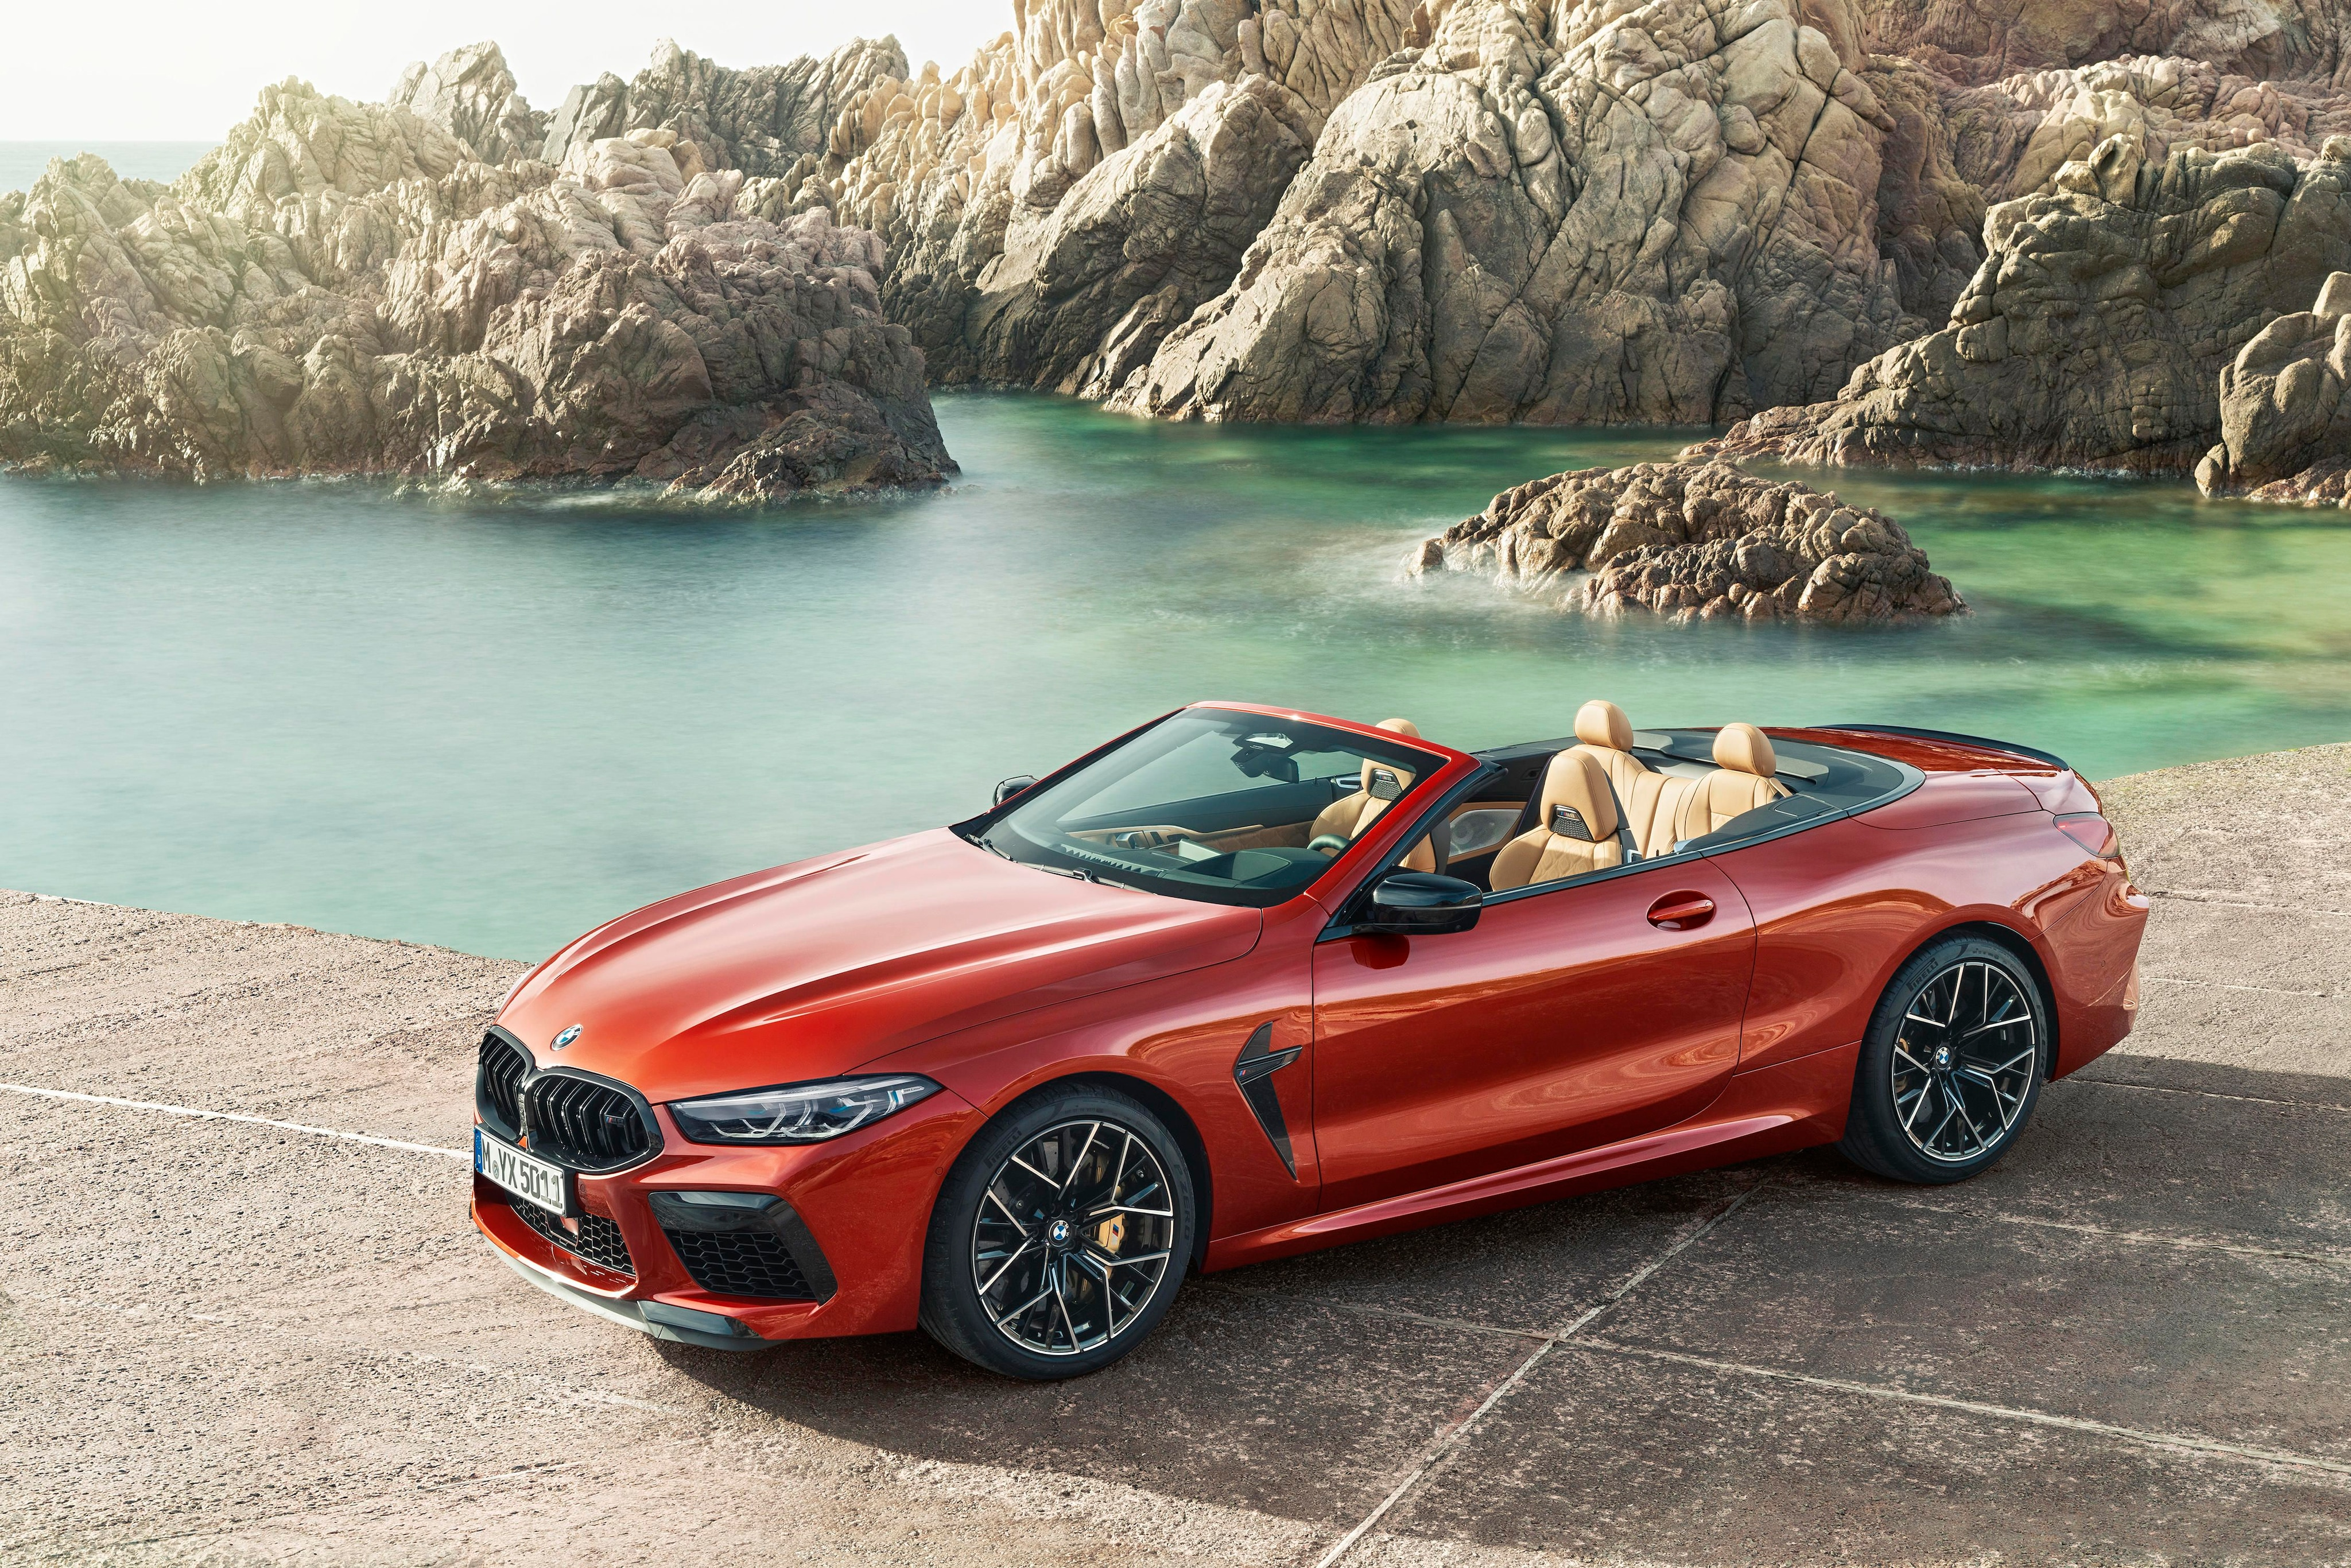 The 2020 Bmw M8 Coupe And Convertible Have Finally Arrived